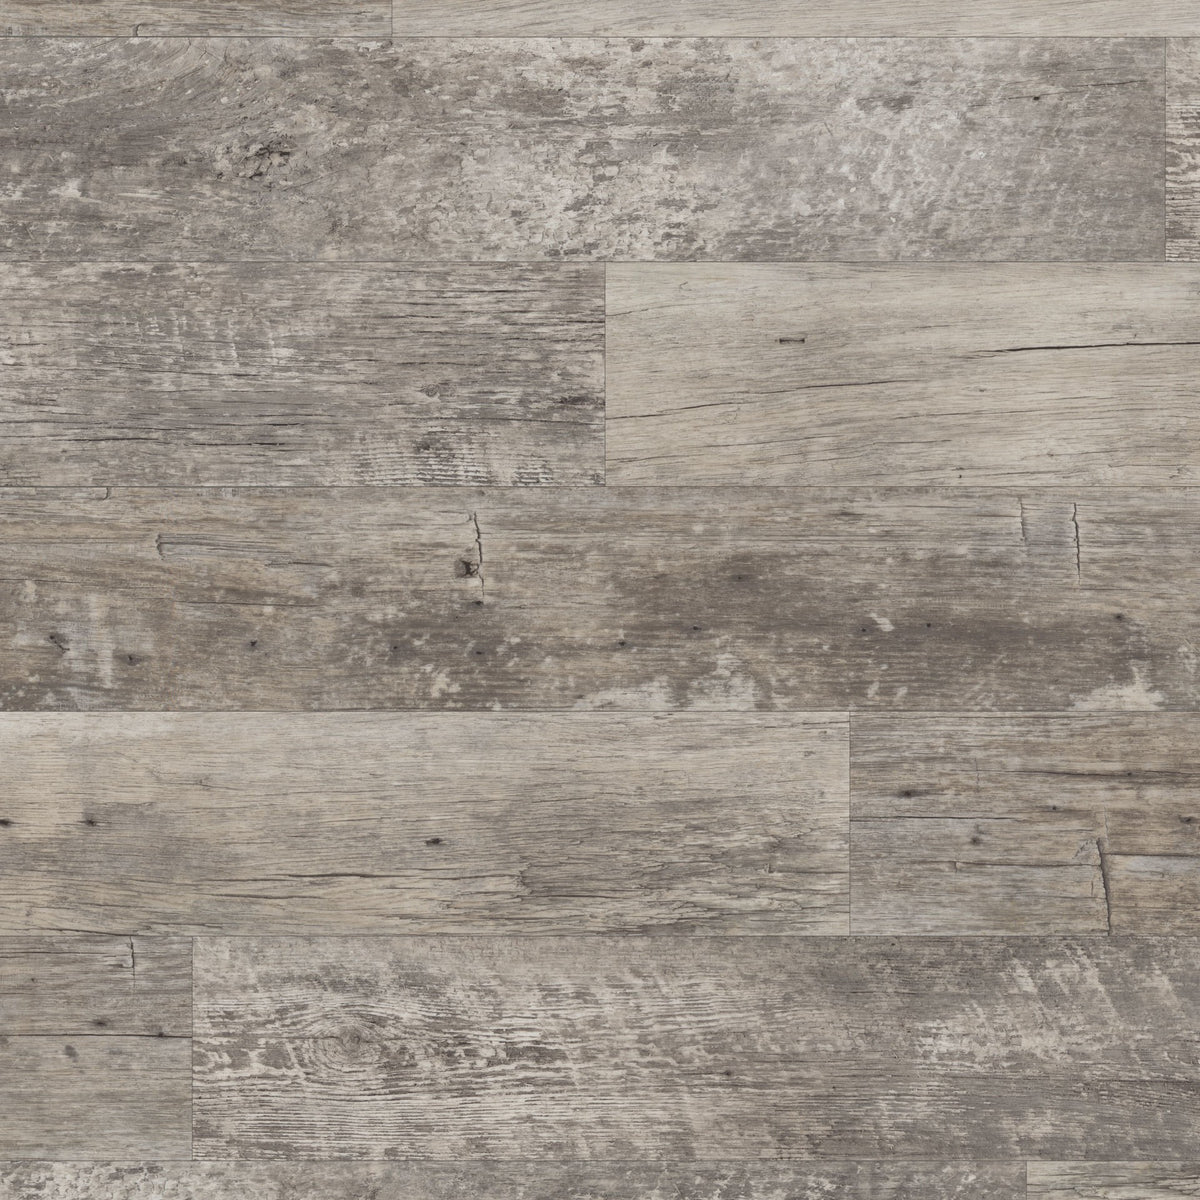 Karndean Van Gogh 7 in. x 48 in. Rigid Core - Aged Redwood